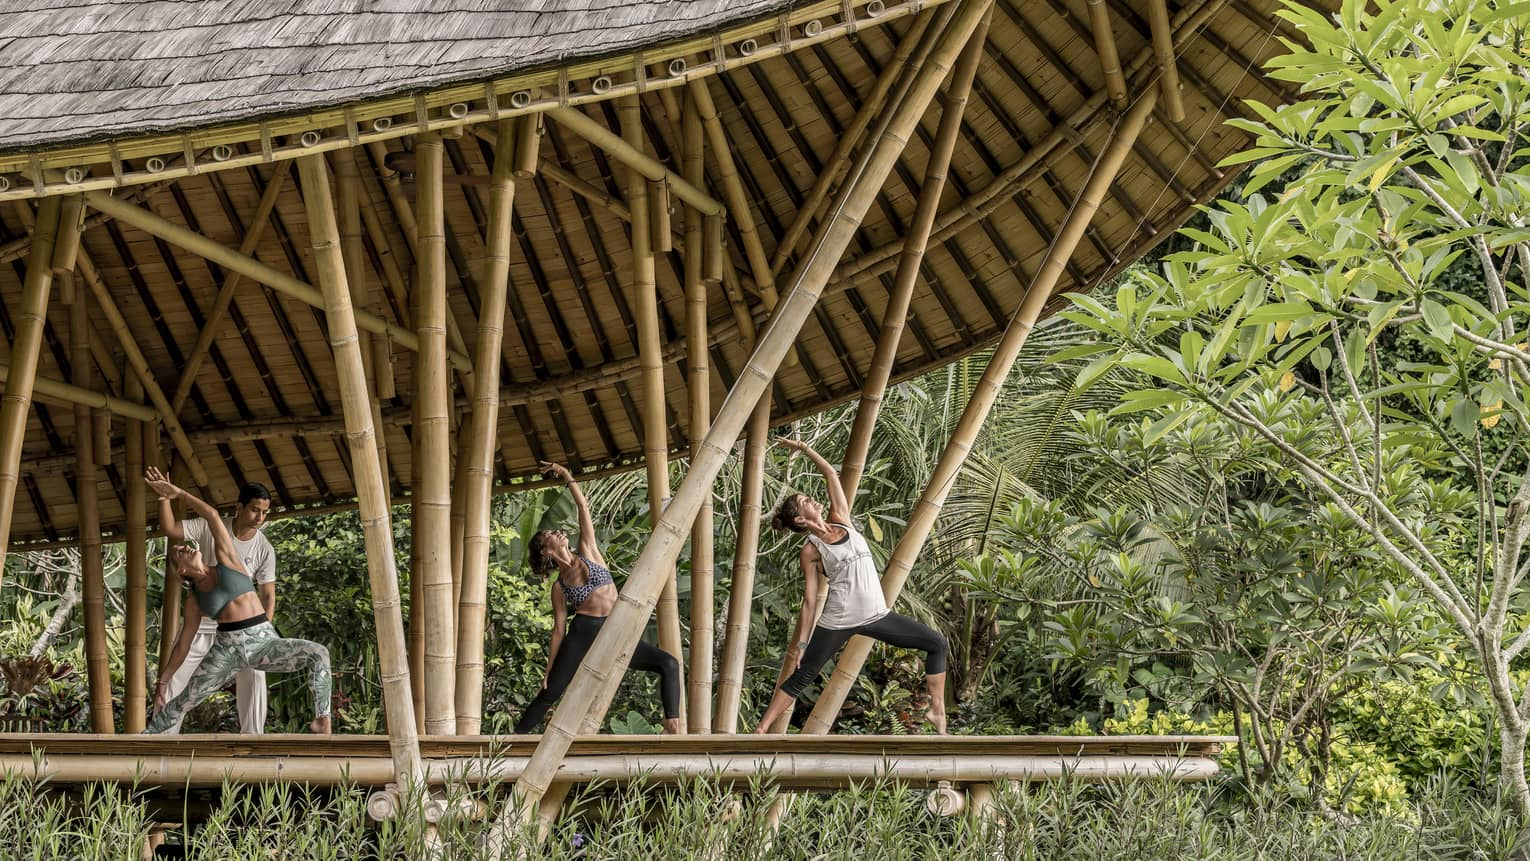 Guests reaching towards the sky while participating in an outdoor yoga class in Bali